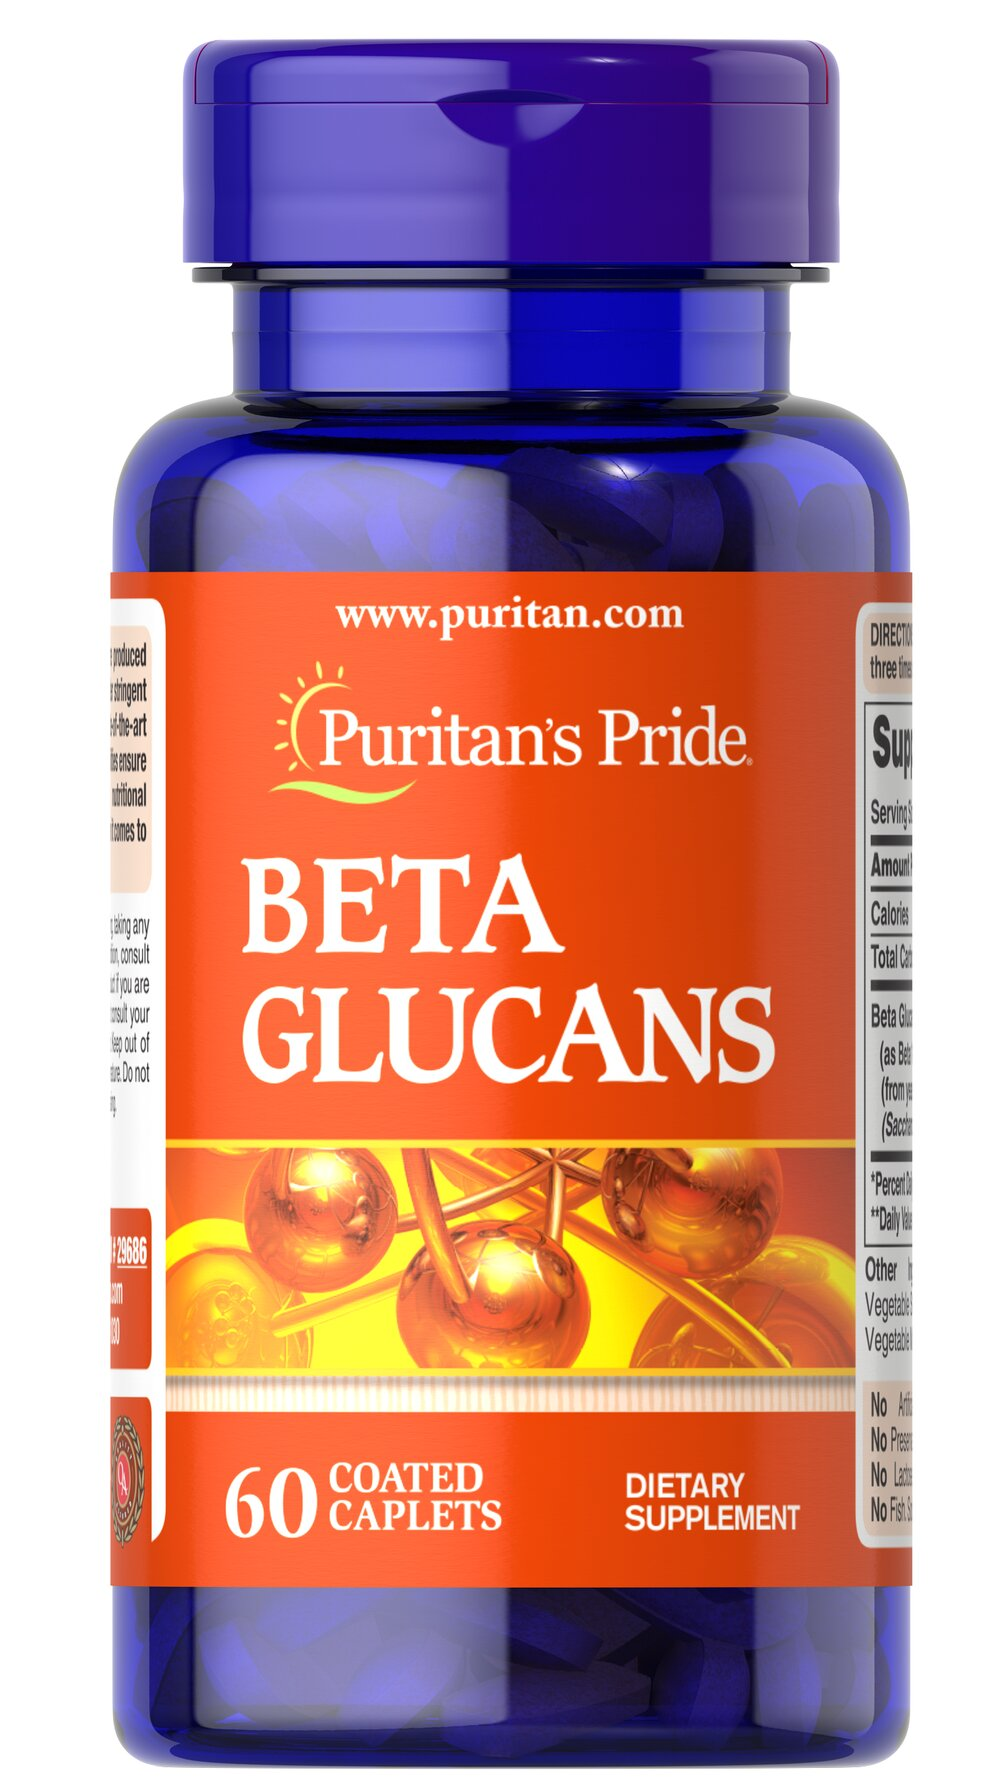 Beta Glucans 200 mg <p>Beta 1,3 Glucans are the major structural components of yeast</p><p>Our Beta 1,3 Glucans are derived from the cell walls of yeast</p><p>Contributes to healthy immune function**</p><p>Contains 200 mg of Beta 1,3 Glucans per tablet</p><p>These tablets are a great choice for vegetarians</p> 60 Tablets 200 mg $23.99